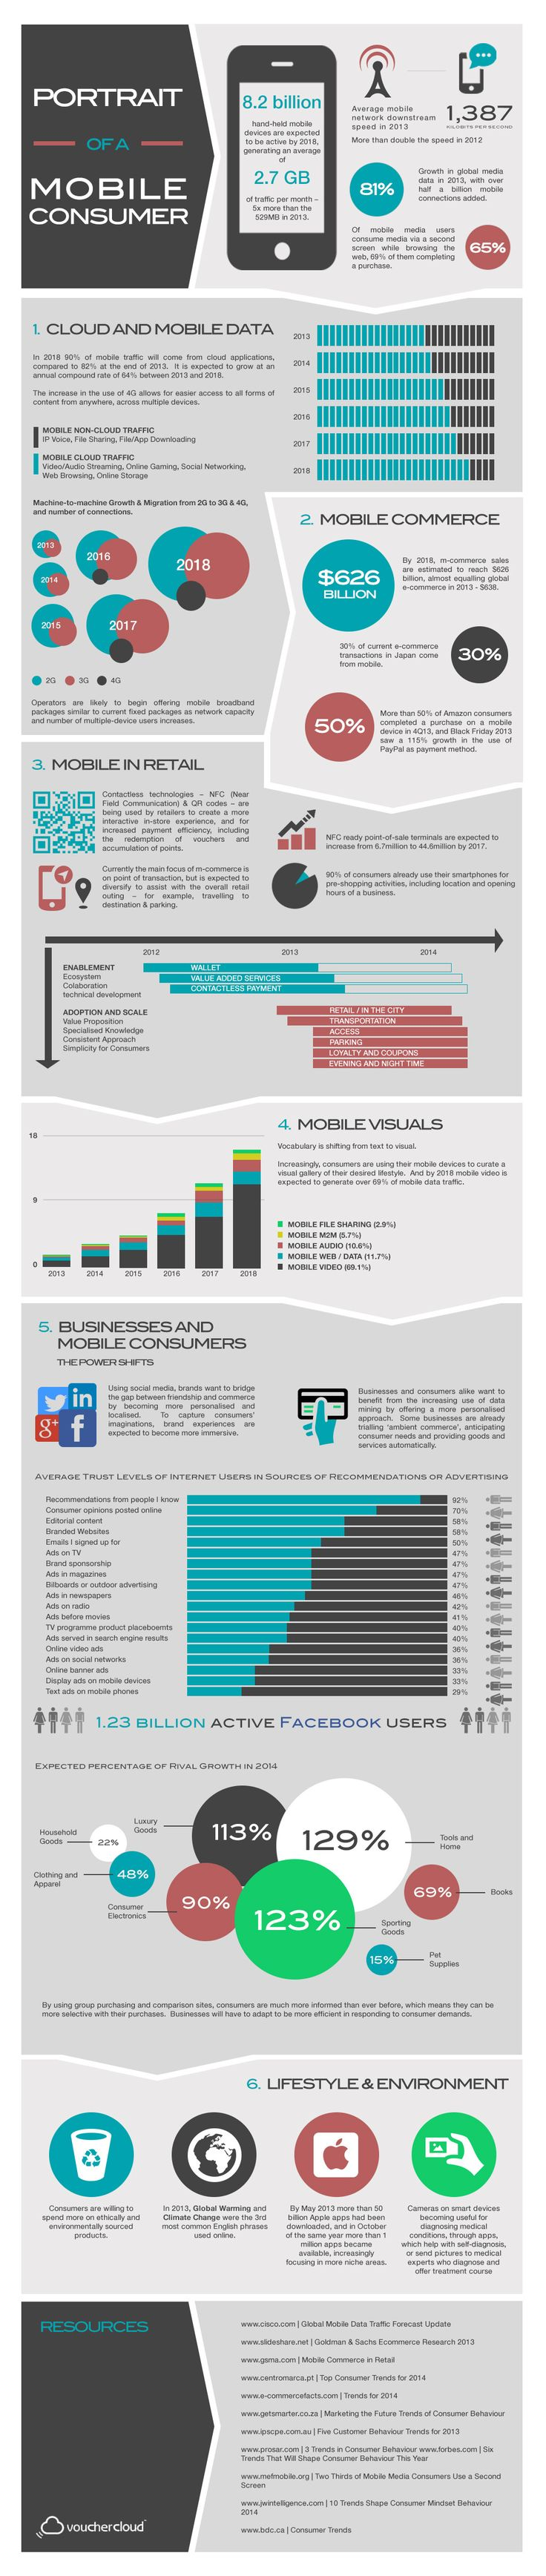 Portrait of #Mobile Consumer - #Infographic #mobilemarketing